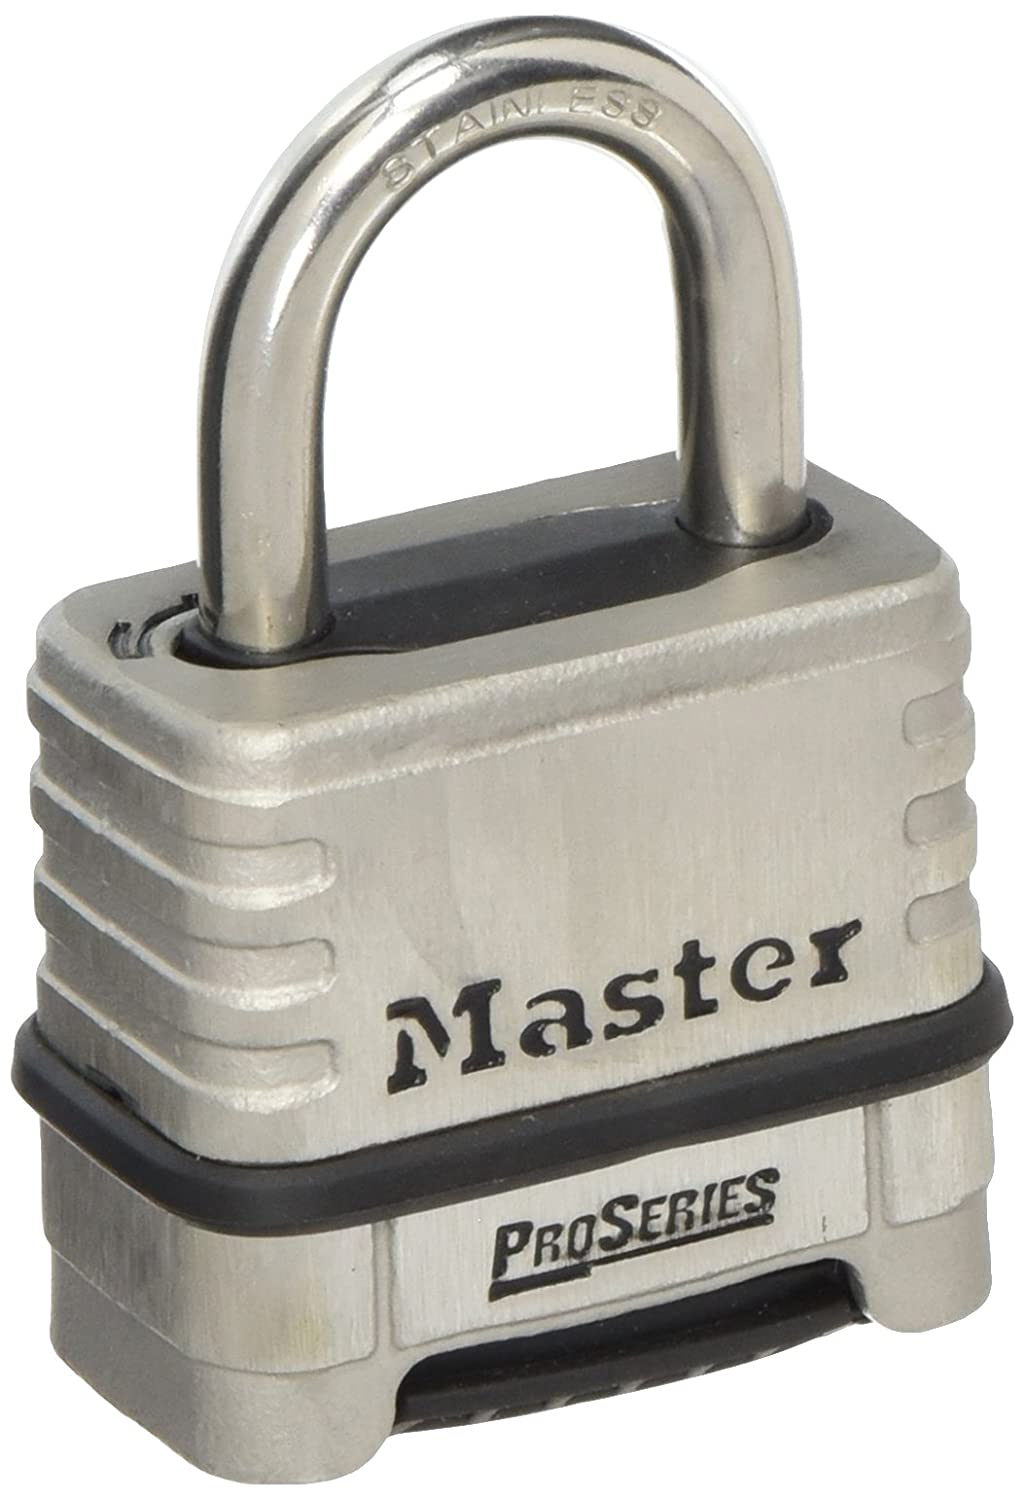 Master Lock Padlock, ProSeries® Stainless Steel Padlock, High Security Lock, Resettable Combination Lock, Best Used for Construction Sites, Industrial Sites, Manufacturing Enviorments and More ProSeries® Stainless Steel Padlock 1174D